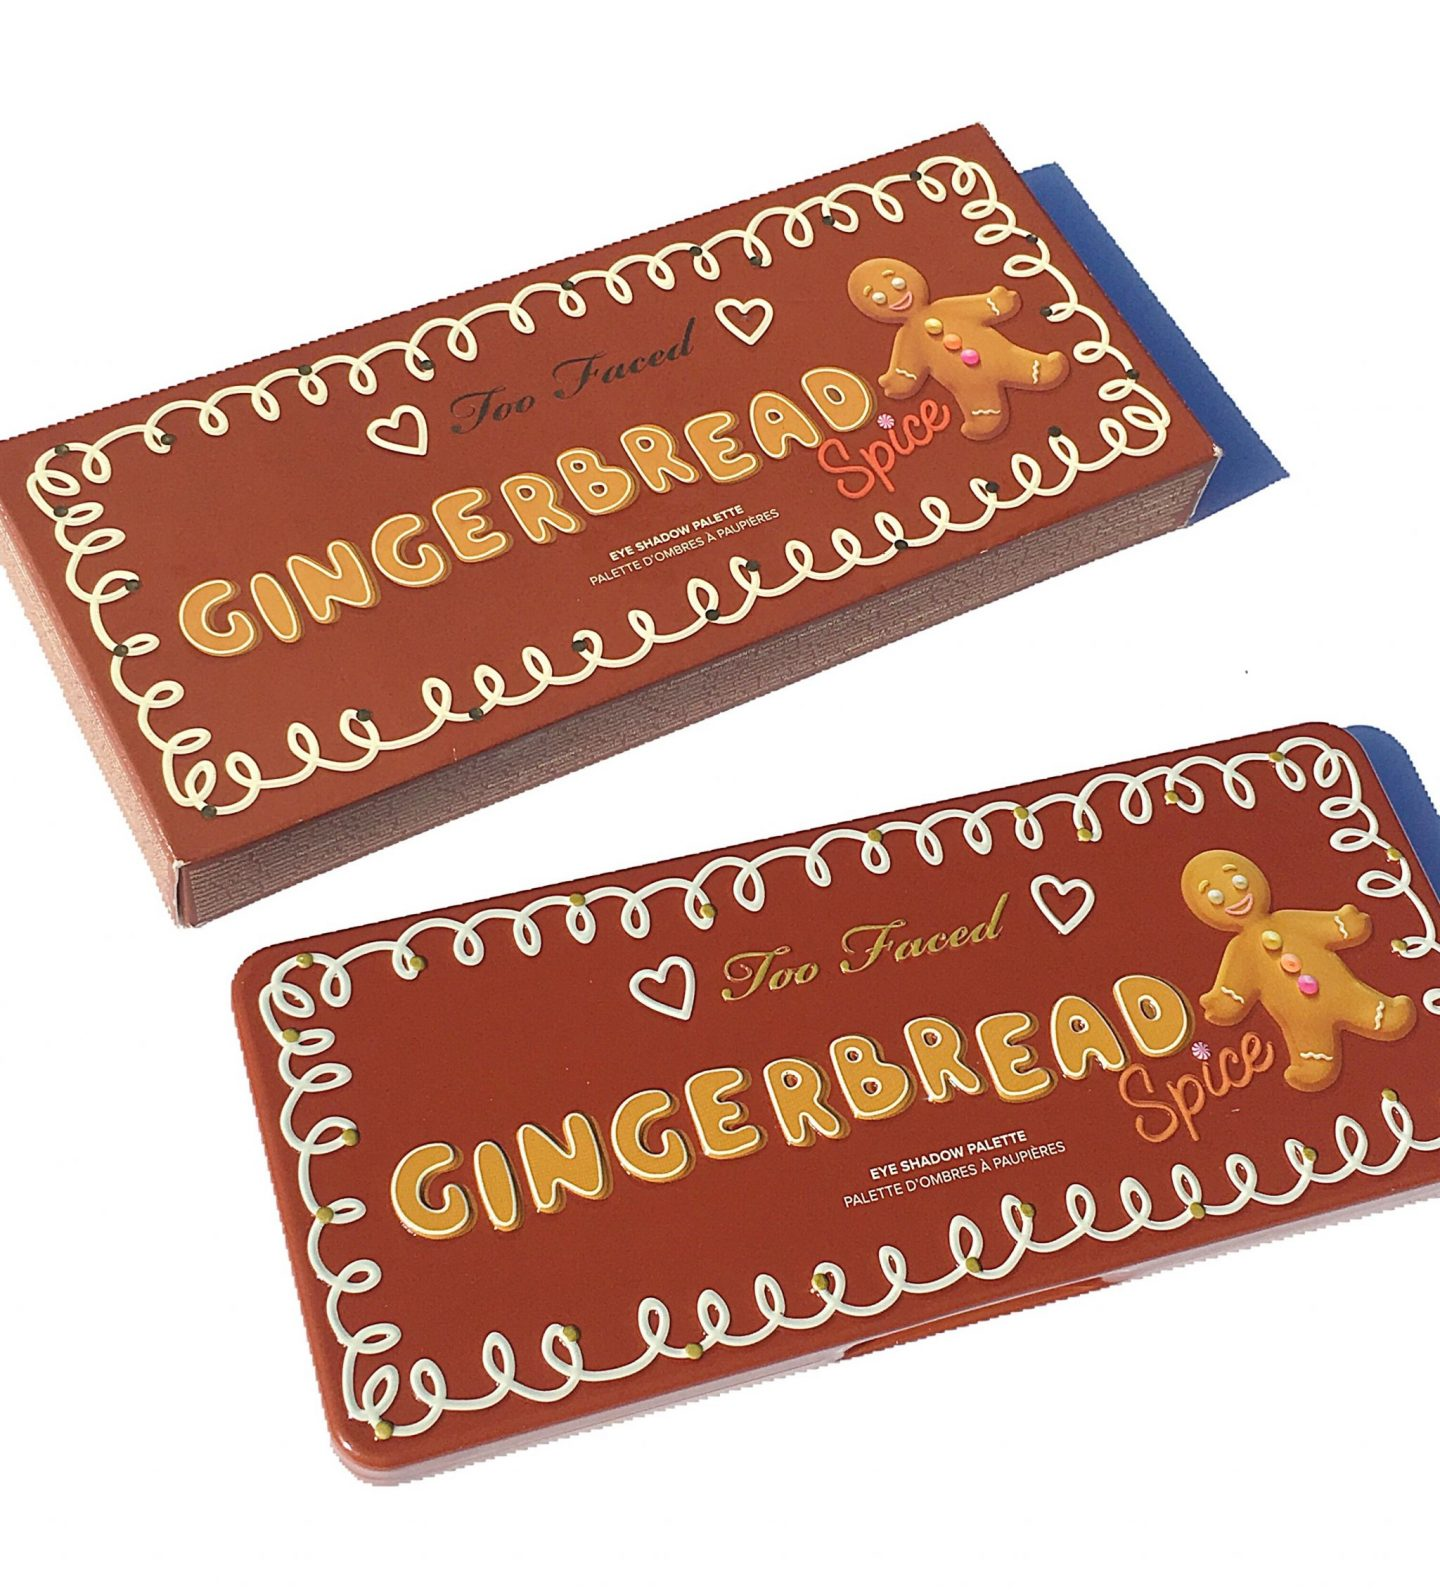 Too Faced Gingerbread Spice Palette Holiday 2018 Review & swatches www.calibeaute.com